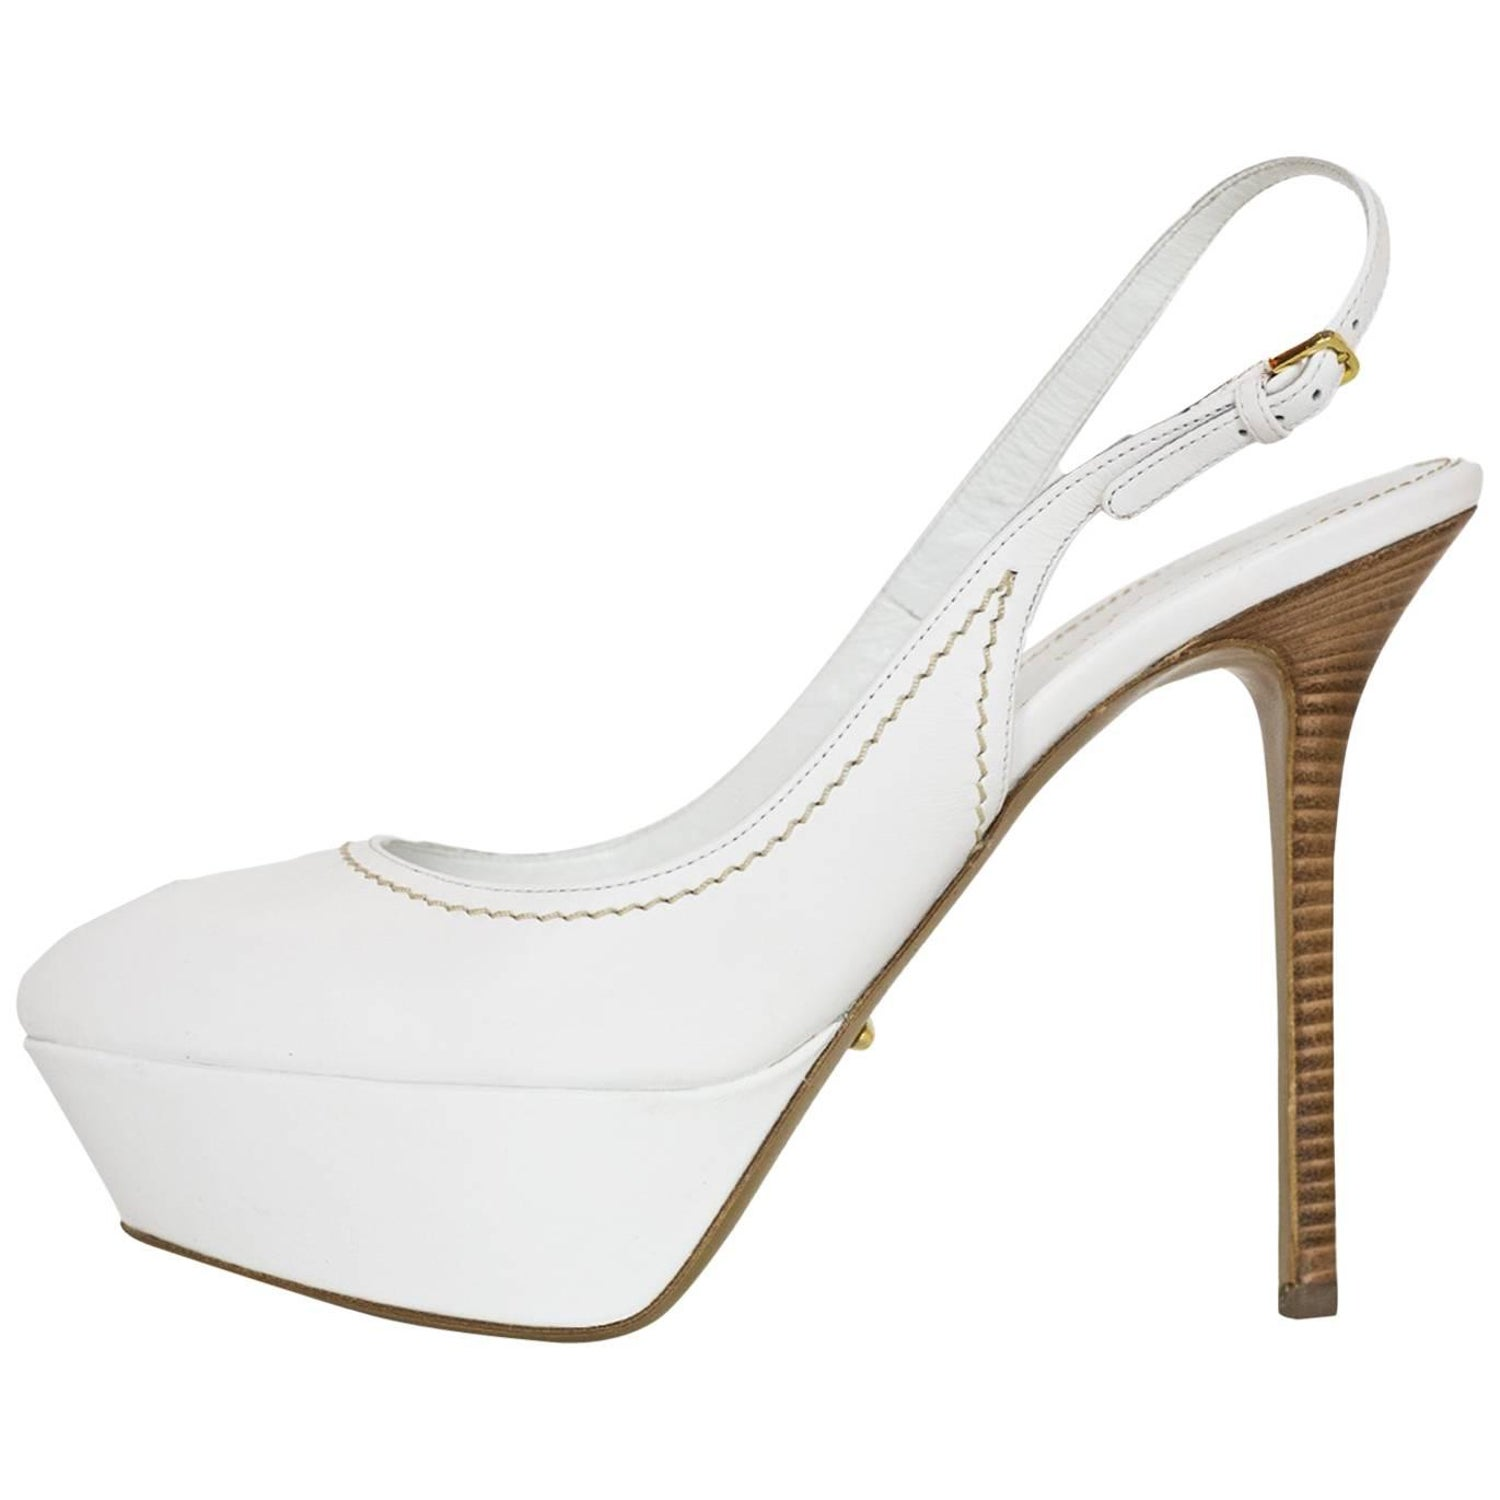 2fd430dcb872 Sergio Rossi White Leather Peep-toe Pumps Sz 38 NIB For Sale at 1stdibs